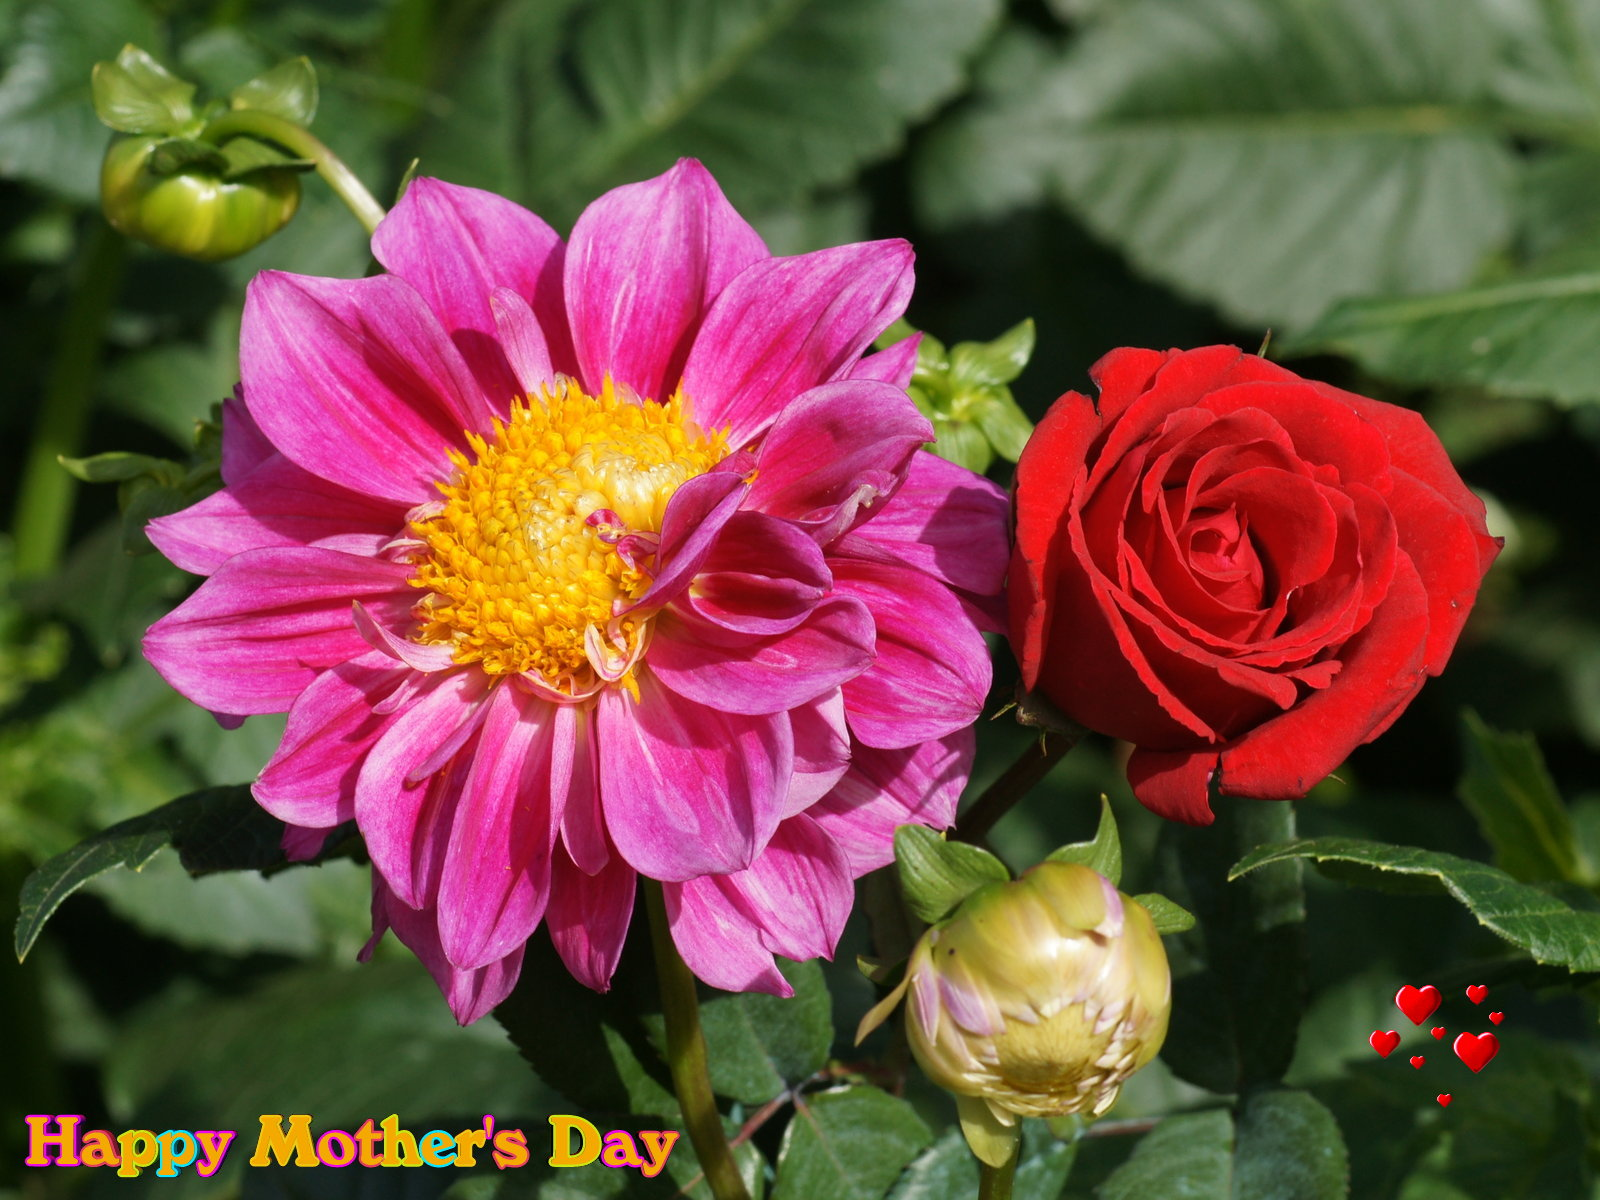 Mothers day wallpaper beautiful flowers